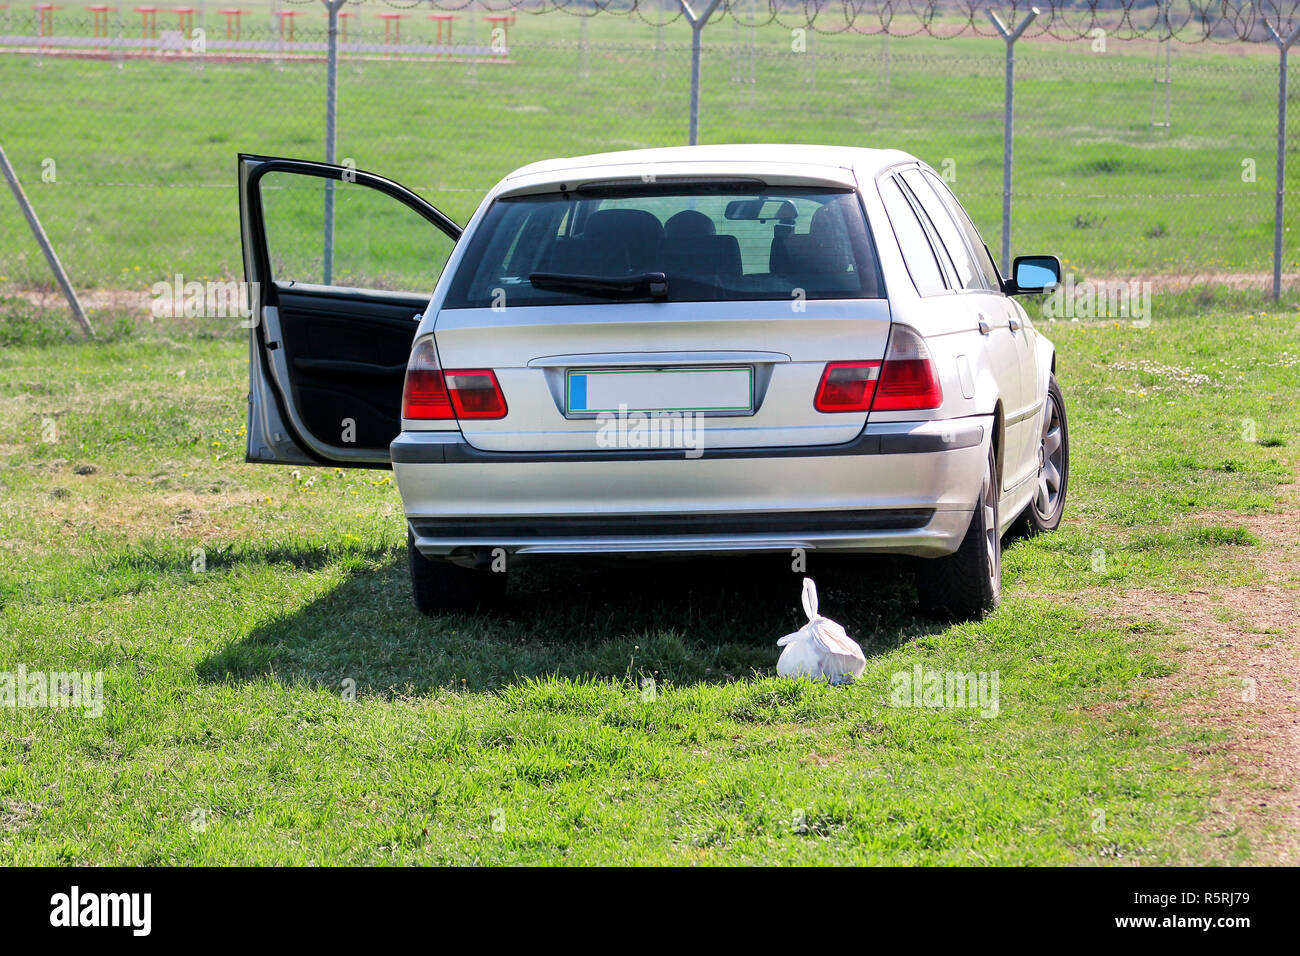 Bag of garbage on grass left behind by car. Nature is destroyed. Trash left in natural environment as an example of environmental pollution. Recycling - Stock Image